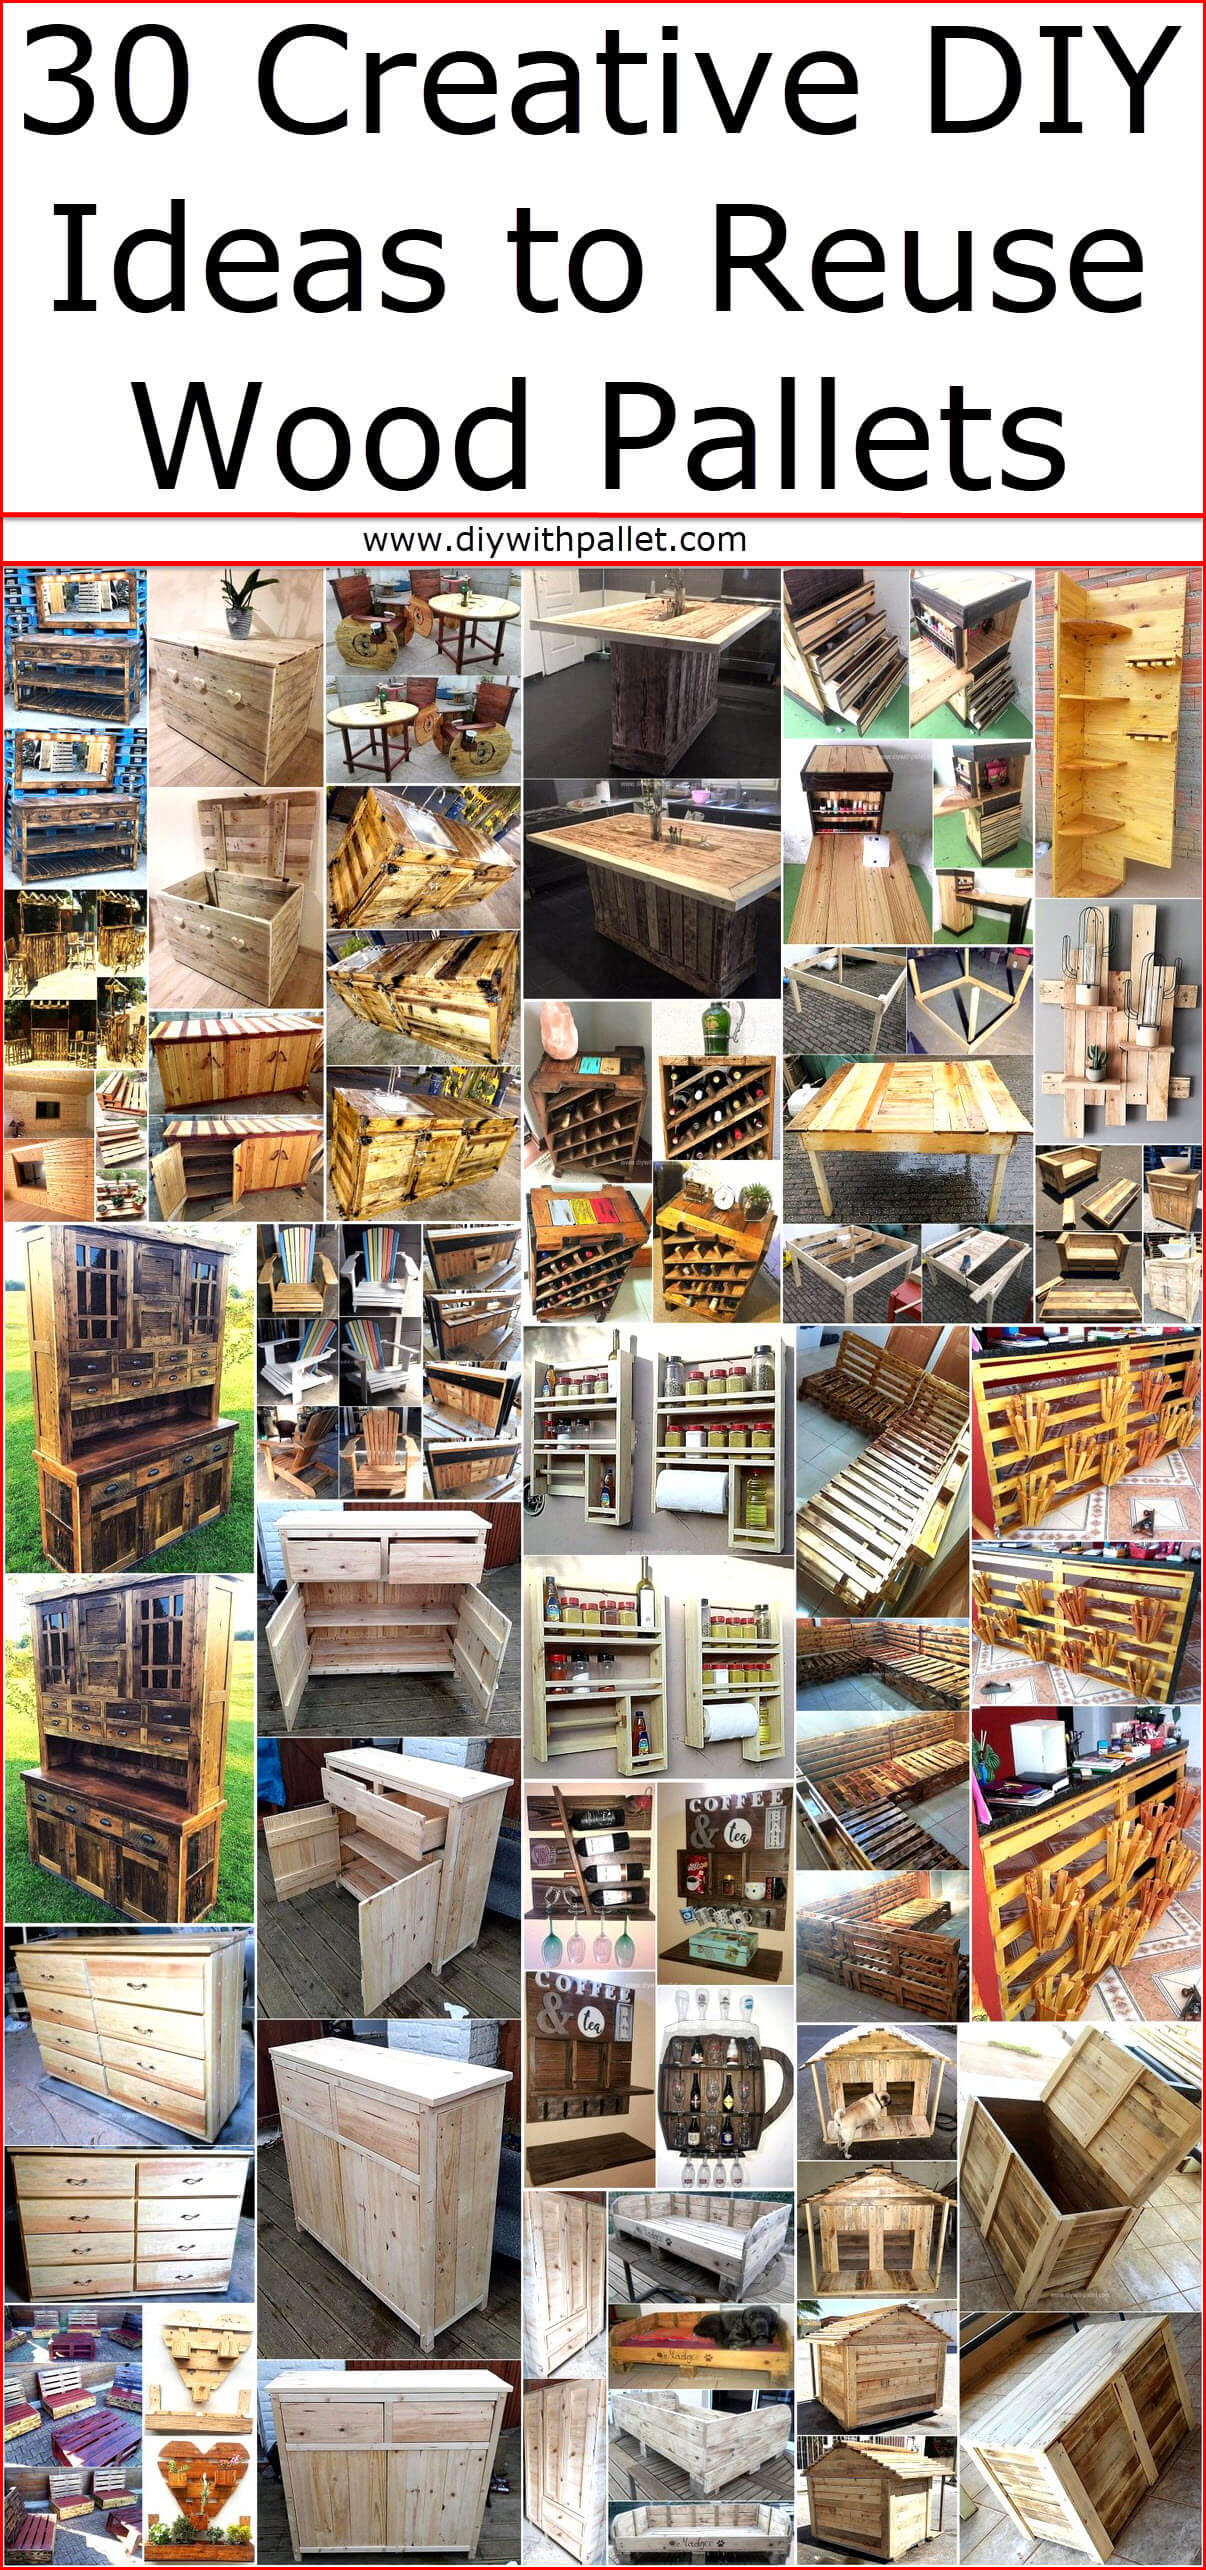 30 Creative Diy Ideas To Reuse Wood Pallets Wood Pallet Creations